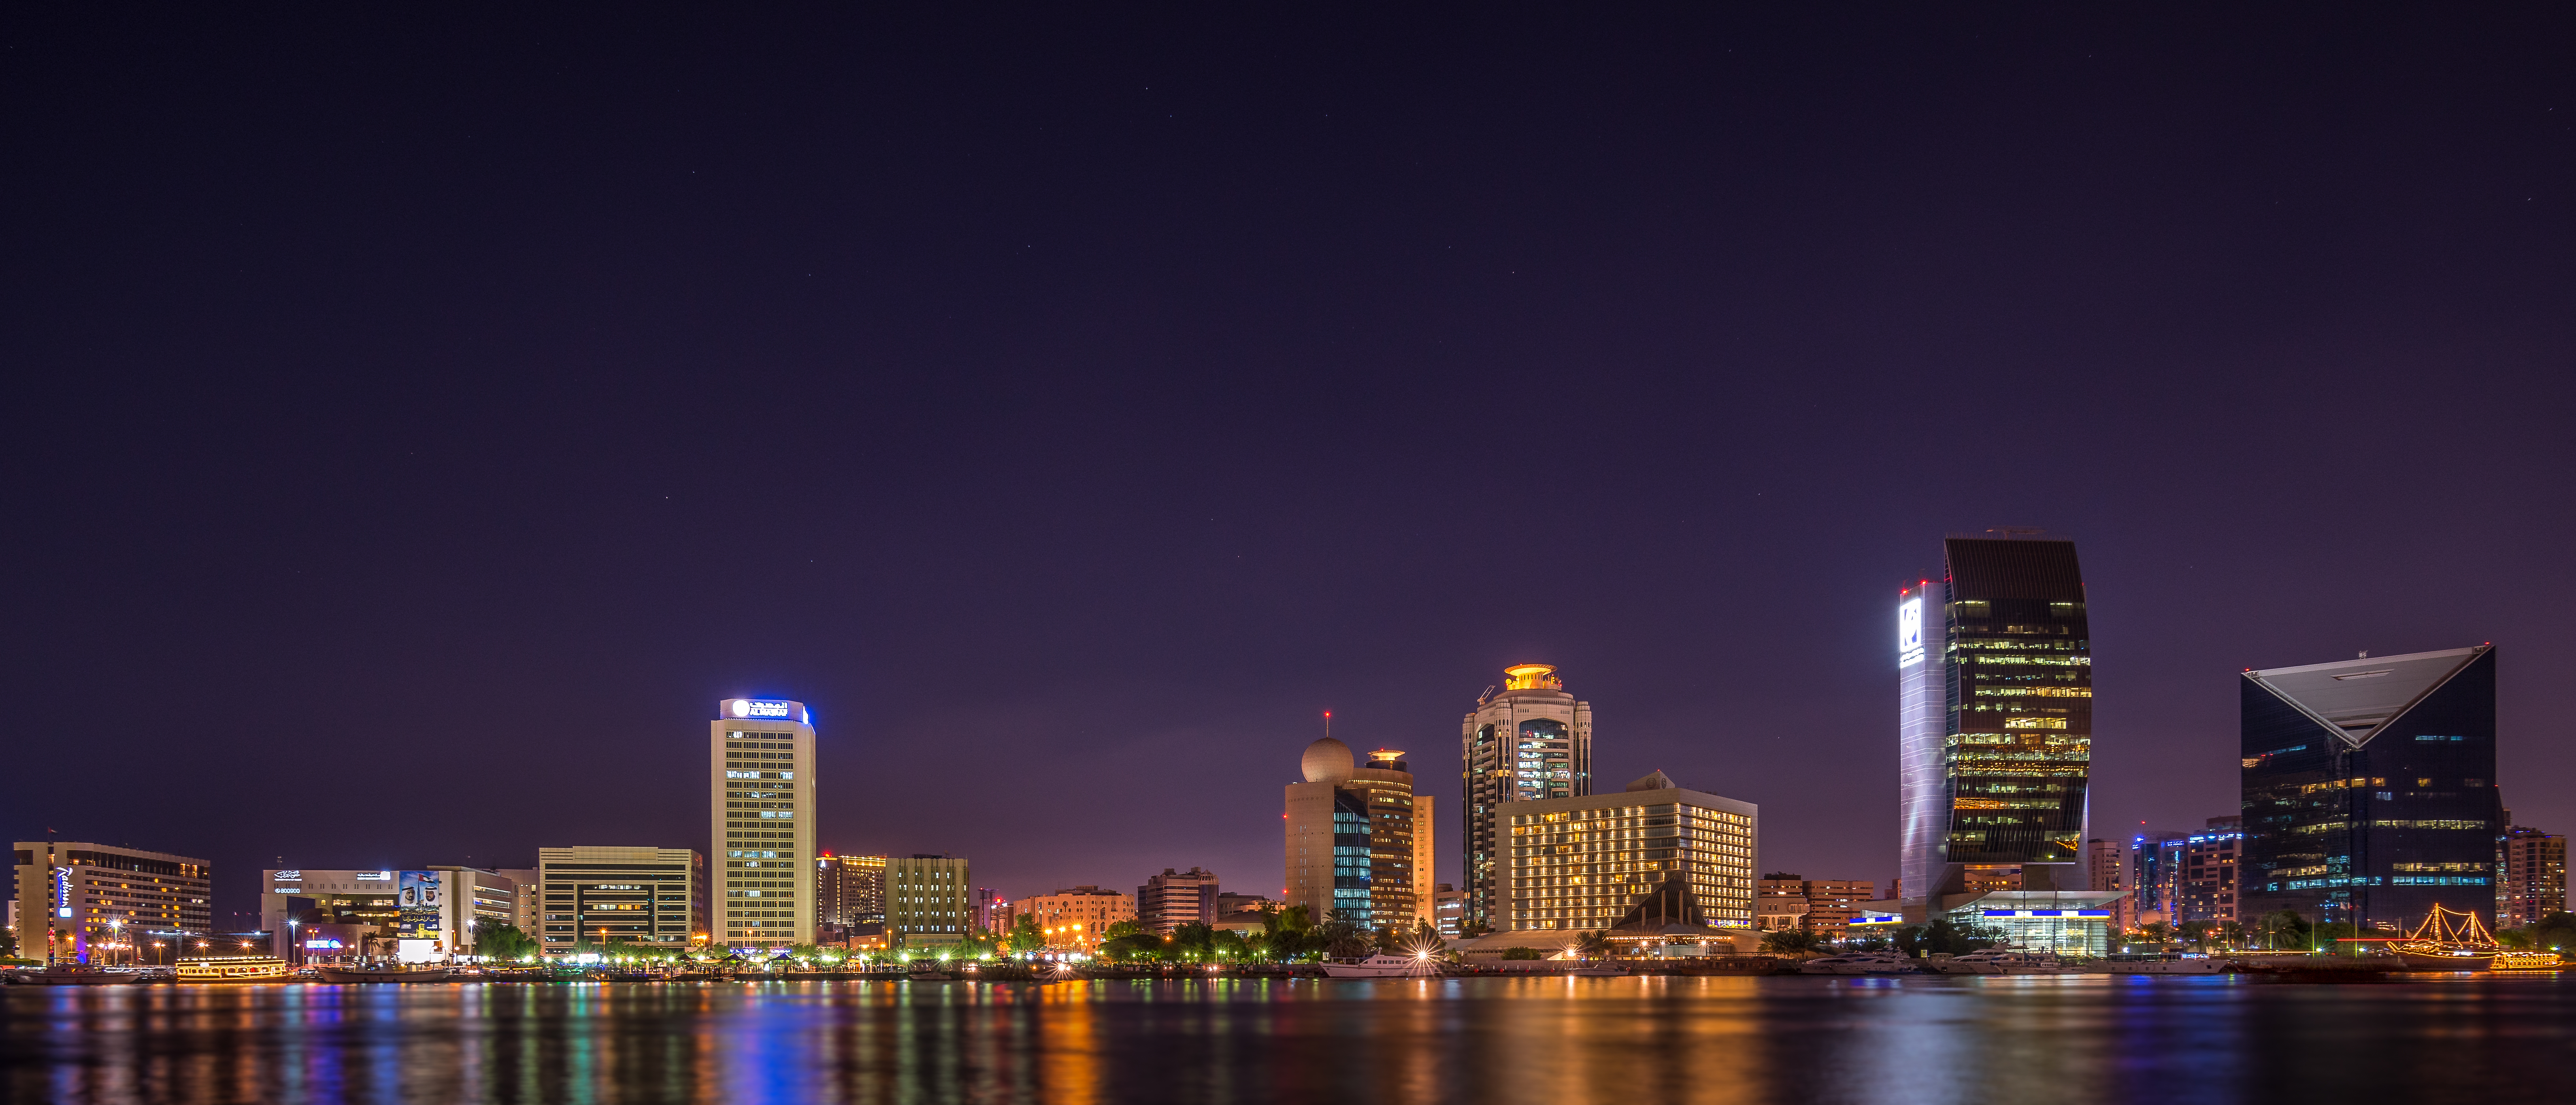 Photographing Cities At Night: Panorama Photography Of City At Night · Free Stock Photo